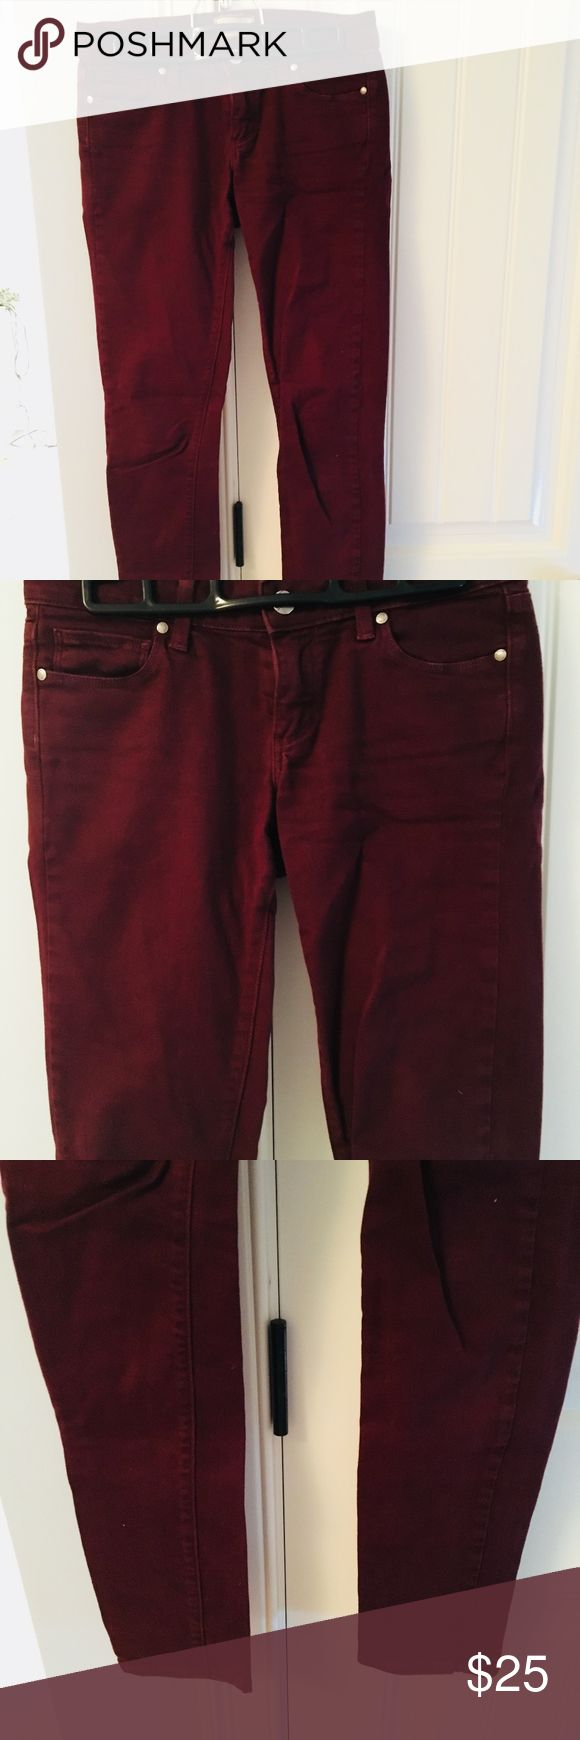 "Maroon Skinny Jeans by Paige. Size 25 Maroon colored skinny jeans ""Peg Skinny"" by Paige. 98% Cotton and 2% Spandex. Very comfortable and good quality pants. Paige Jeans Jeans Skinny"